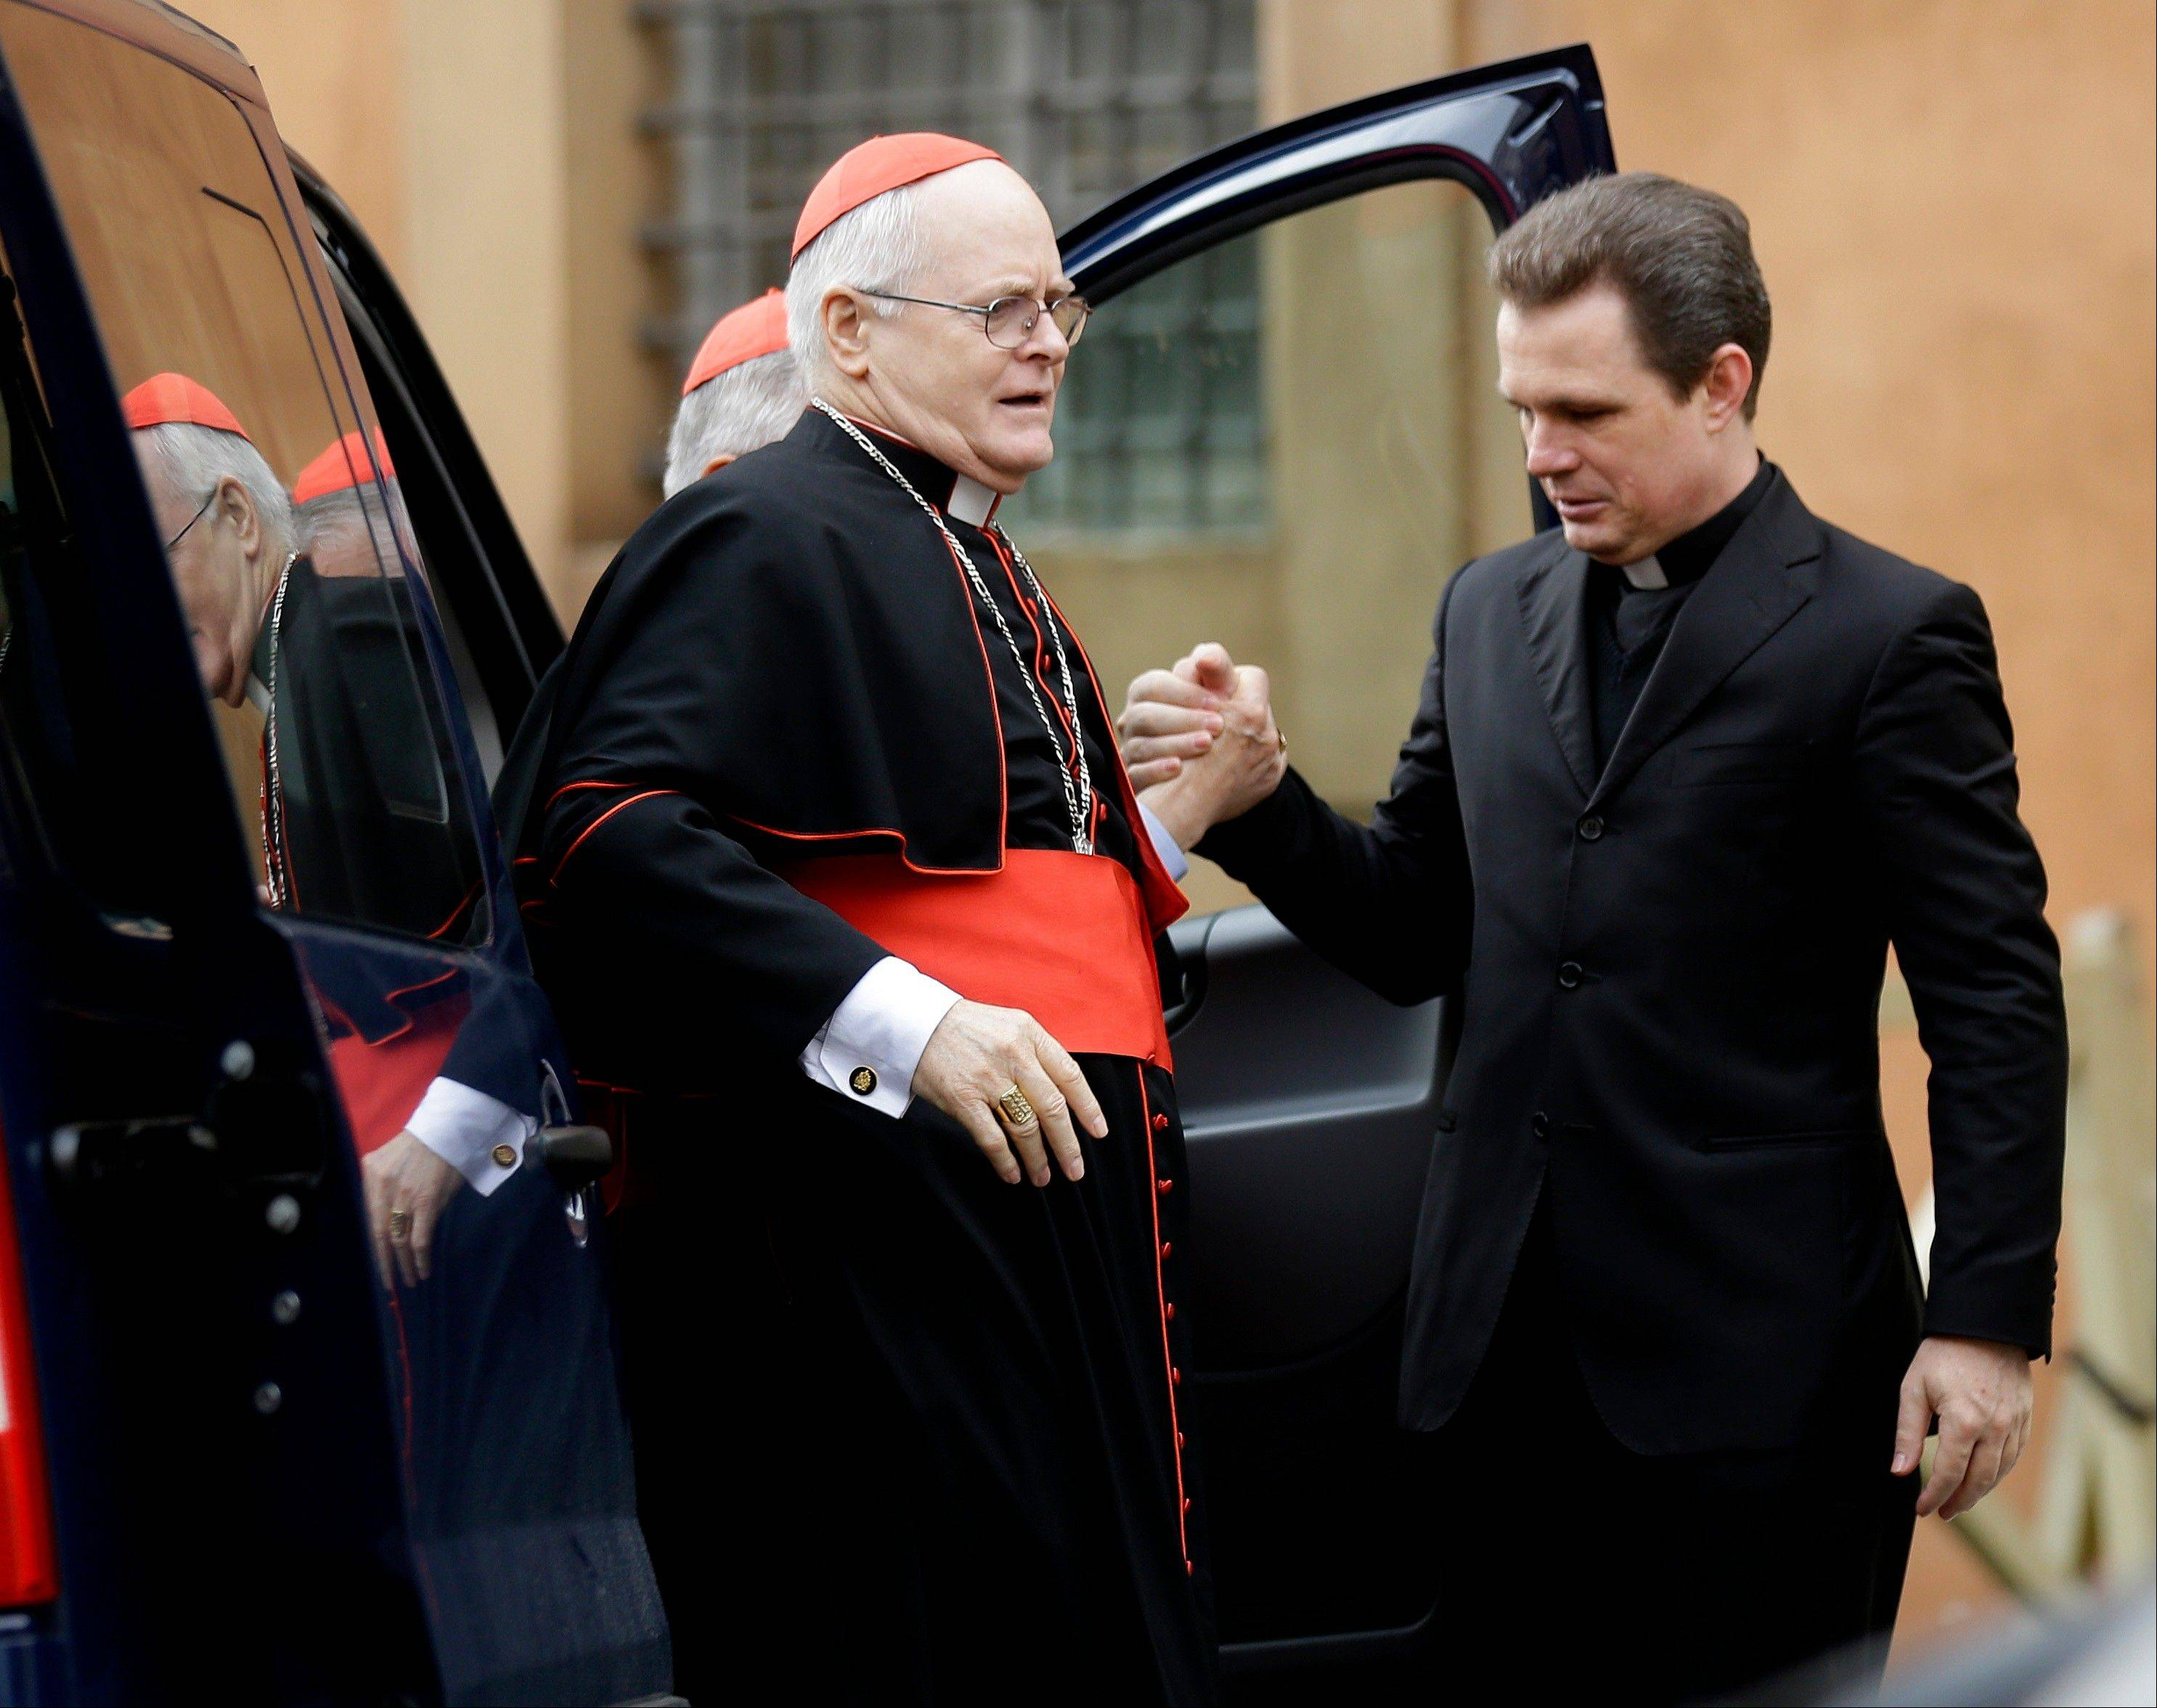 Cardinal Odilo Pedro Scherer arrives for a meeting at the Vatican, Friday, March 8, 2013. The Vatican says the conclave to elect a new pope will likely start in the first few days of next week.